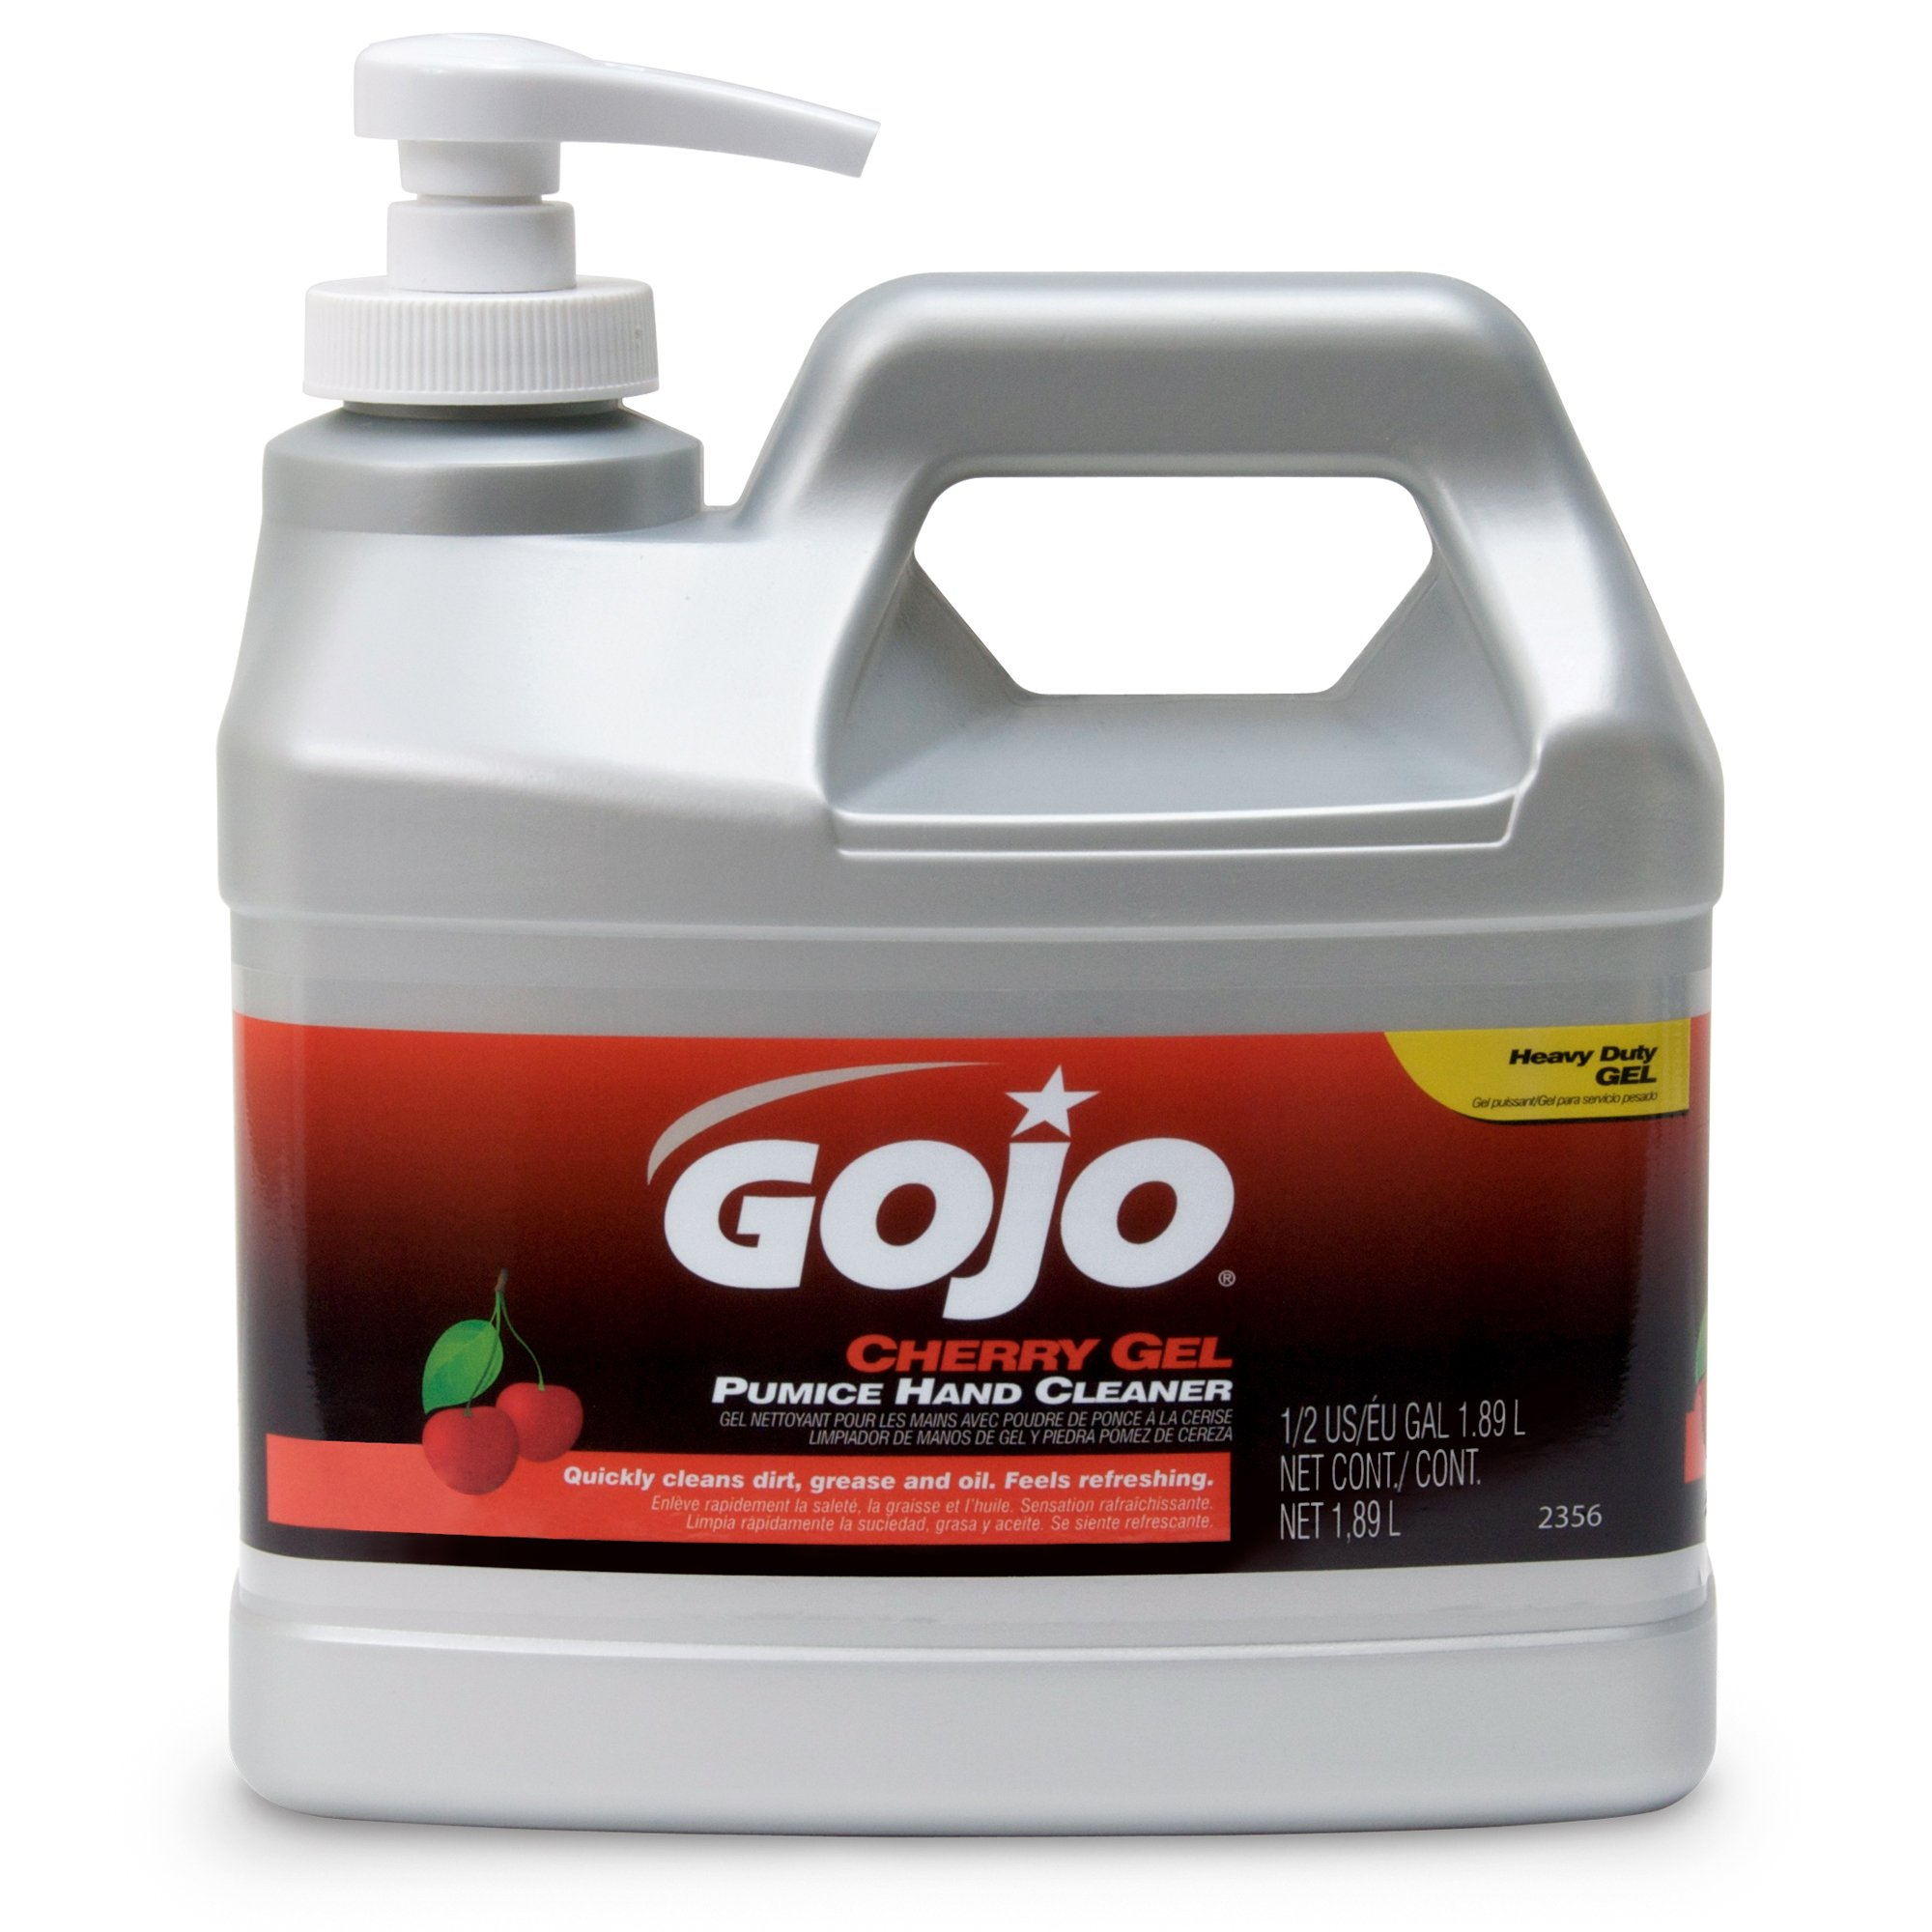 GOJO 2356-04 Cherry Gel Pumice Hand Cleaner, 1/2 Gallon Bottle (Pack of 4)